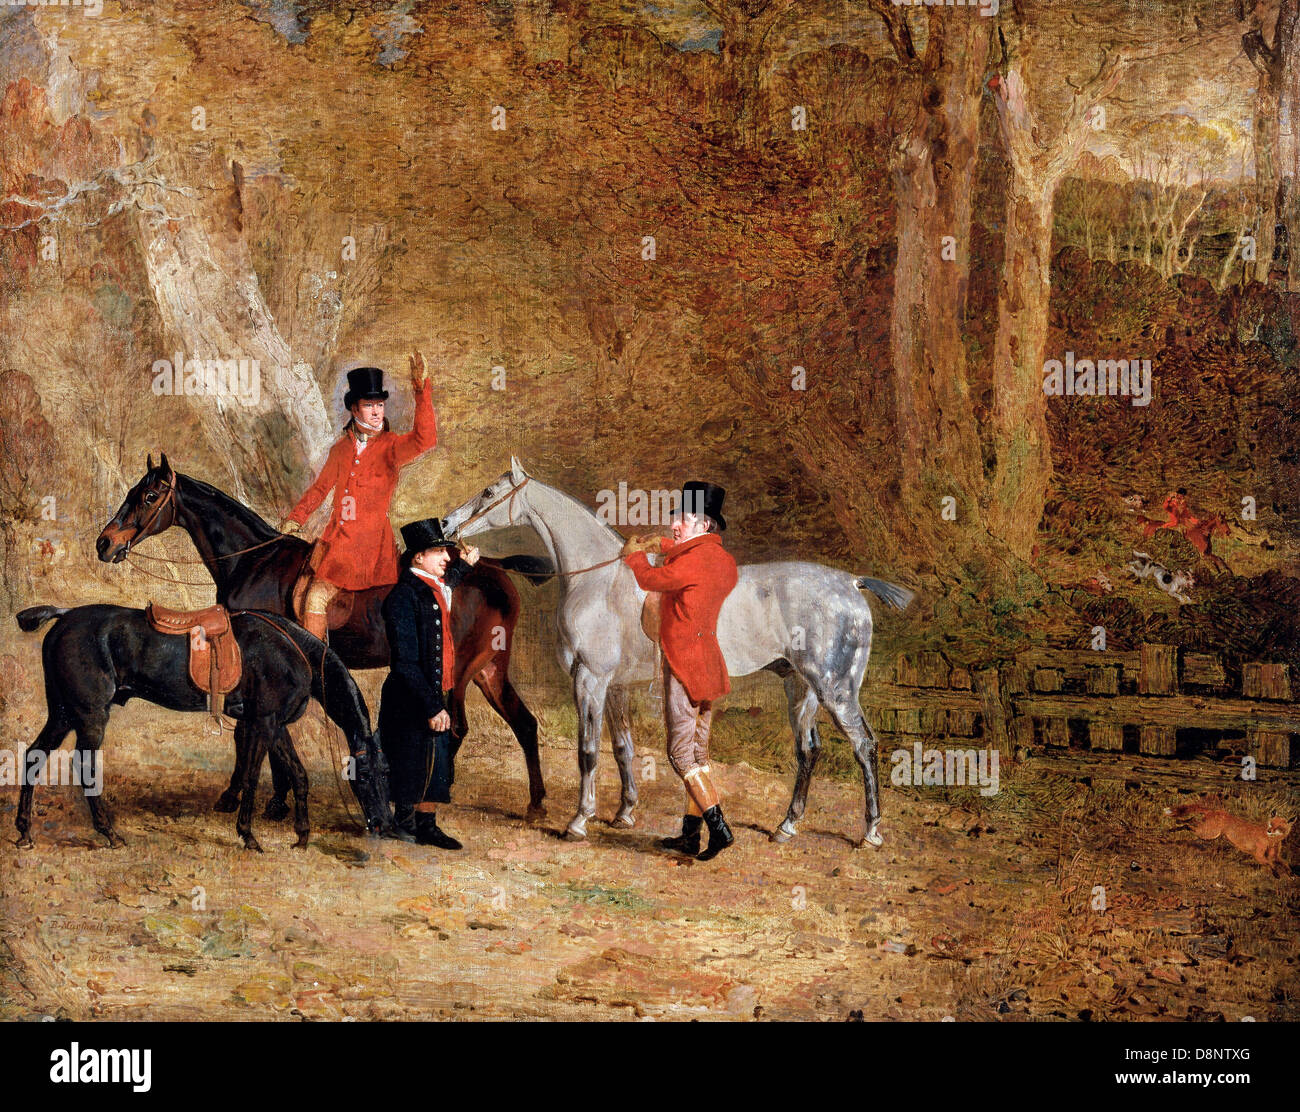 Benjamin Marshall, Foxhunting Scene 1808 Oil on canvas. Yale Center for British Art, New Haven, Connecticut, USA. - Stock Image